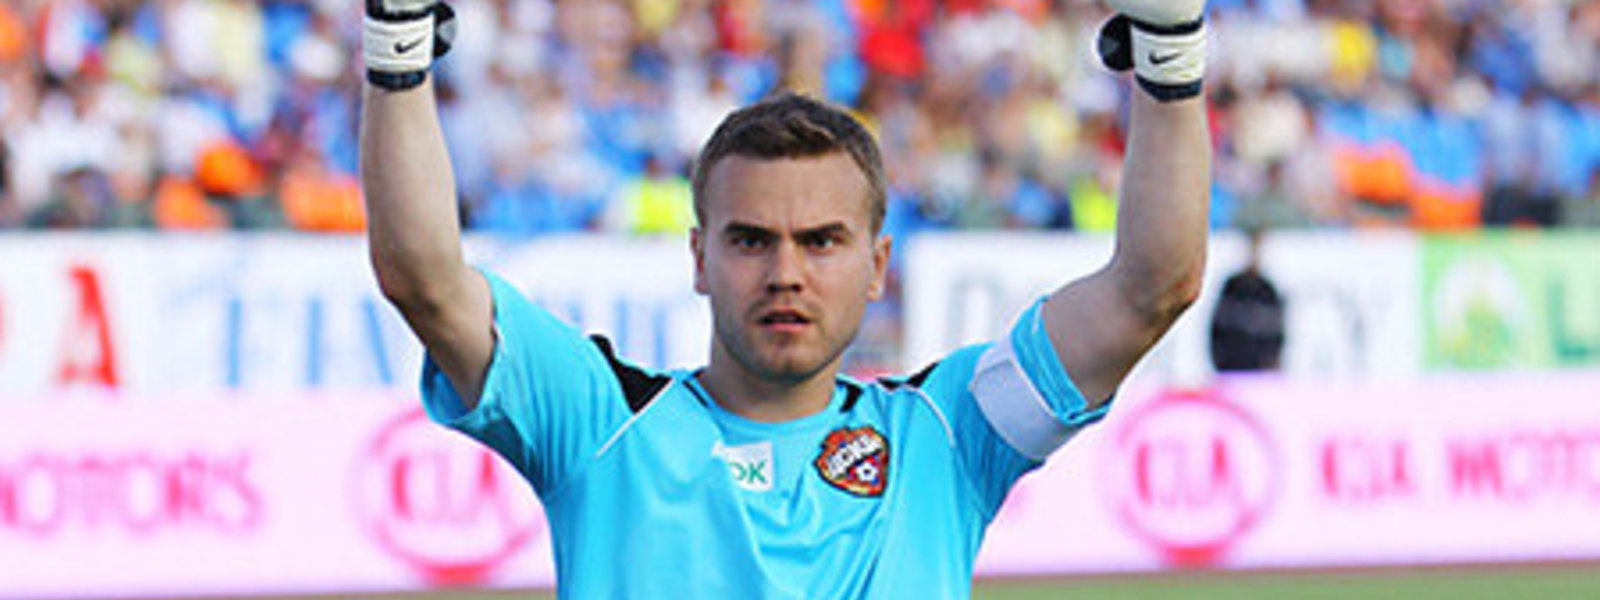 Very big igor akinfeev